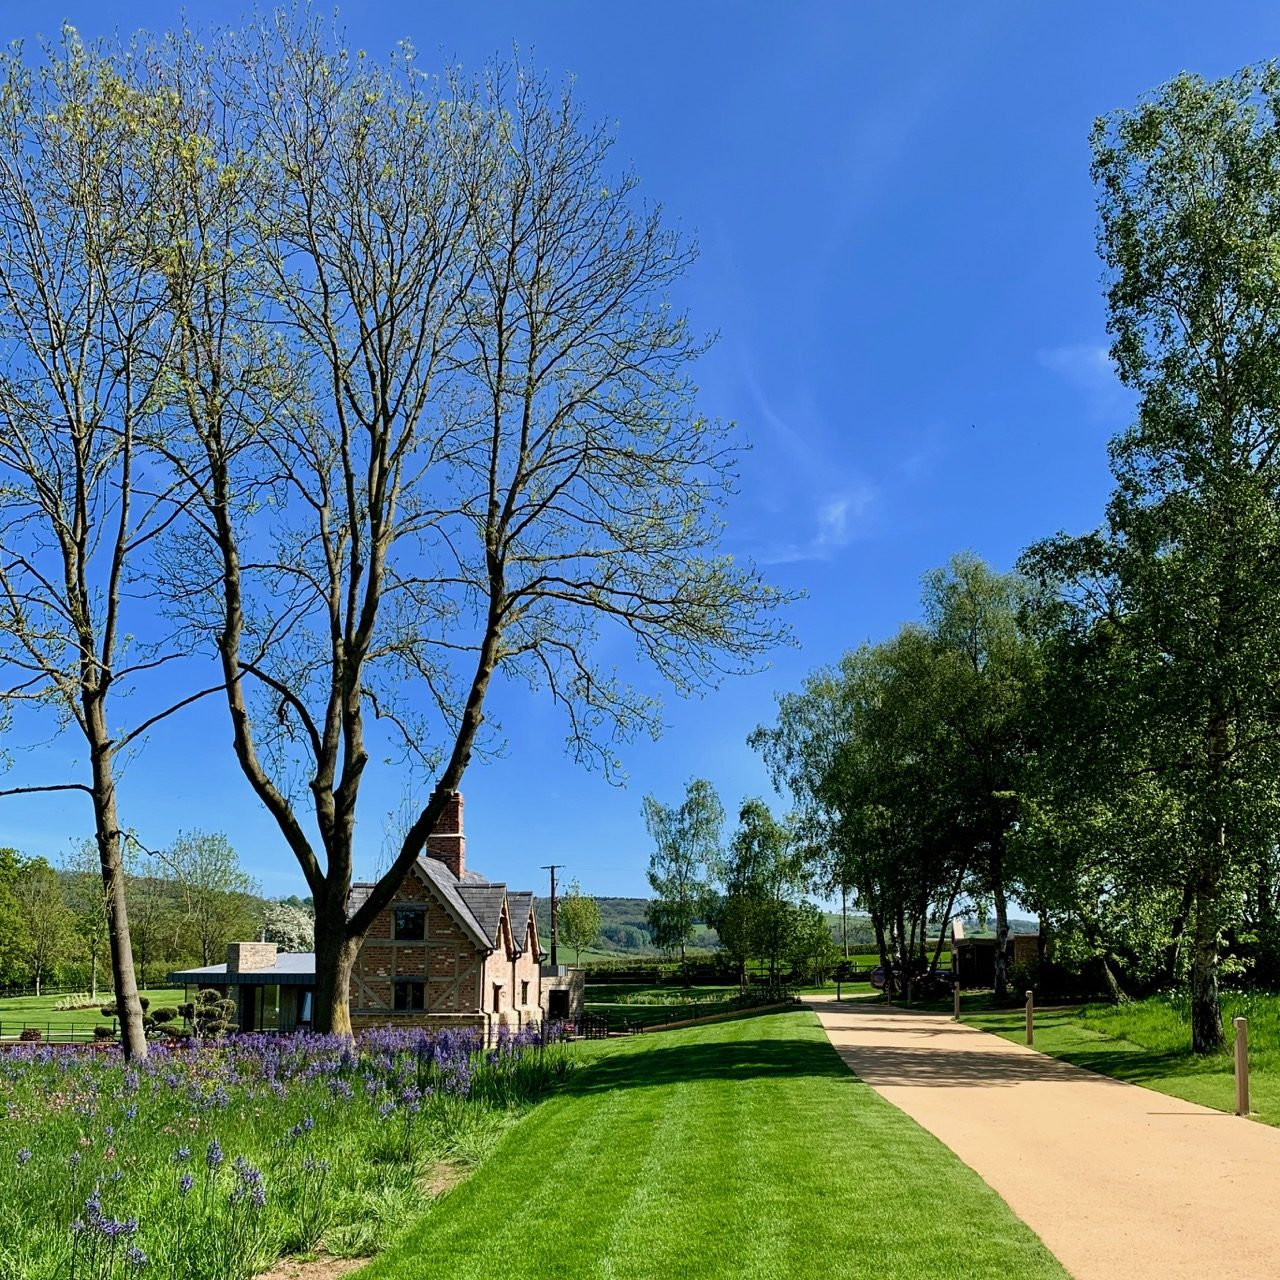 The driveway leading to the beautiful Tudor cottage in the Cotswolds